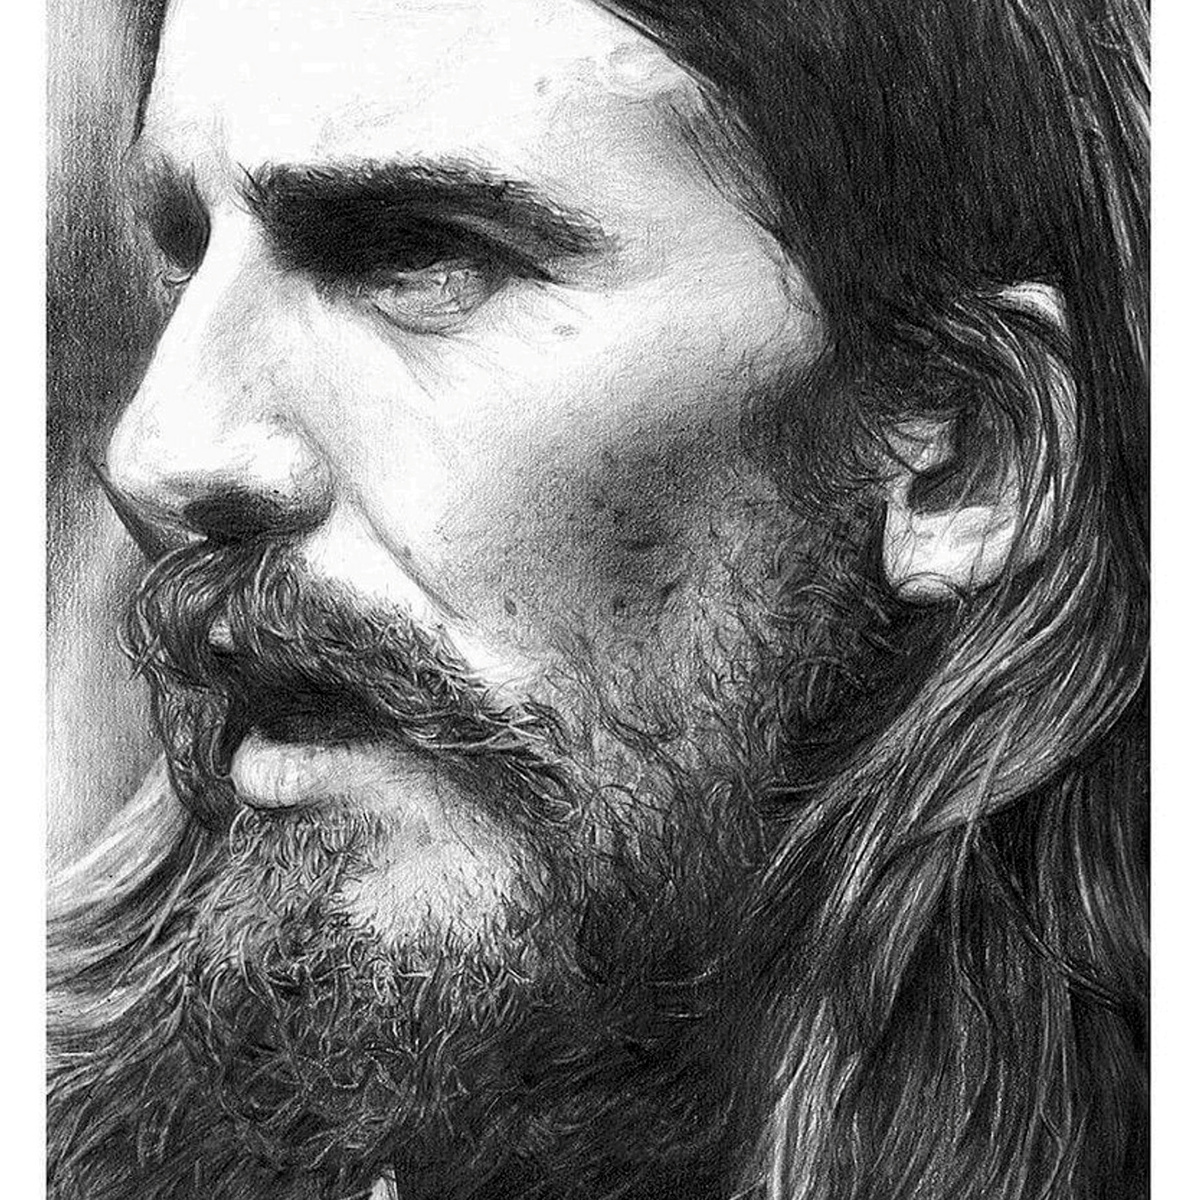 Former Model Now Creates Incredible Photo Real Portraits Using Pencil SWNS BEATLES DRAWINGS 02